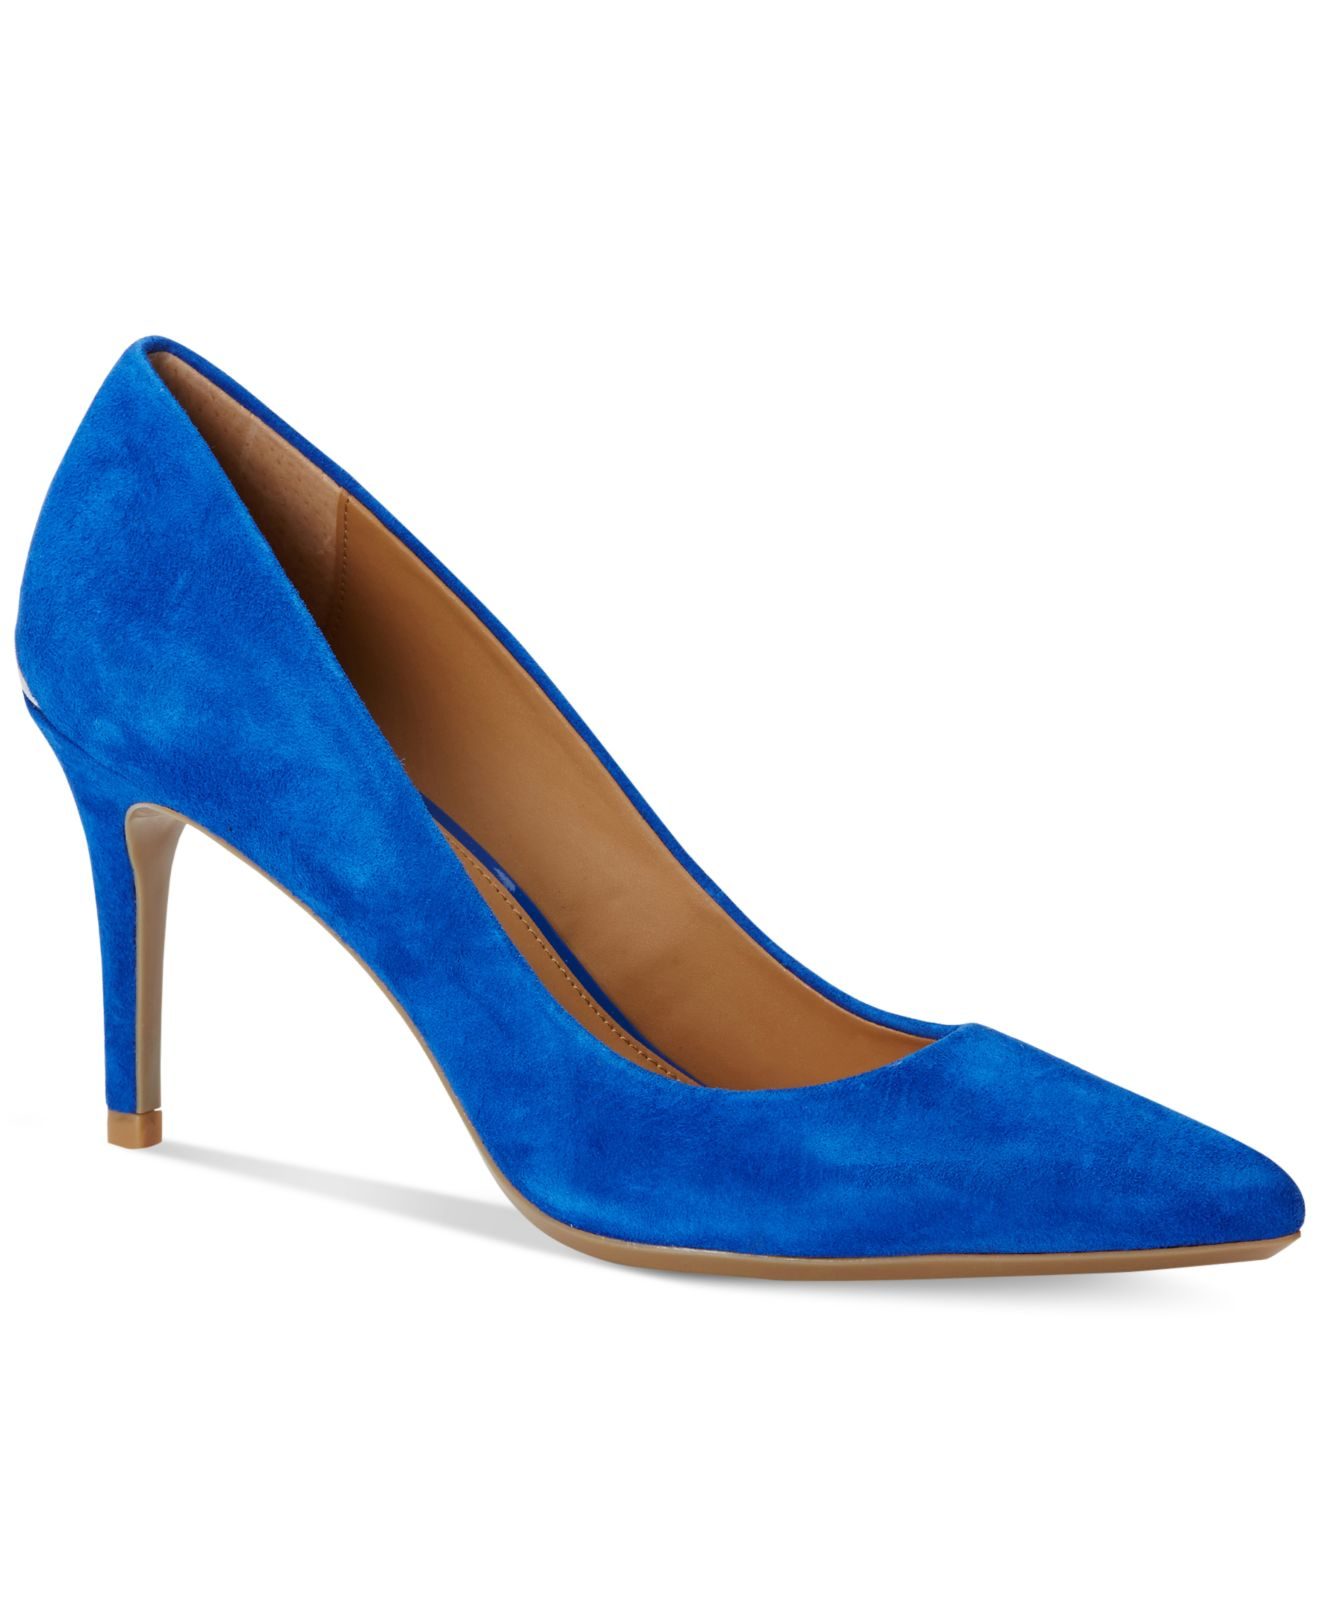 b0285f8c6f50 Lyst - Calvin Klein Women s Gayle Pointed-toe Pumps in Blue